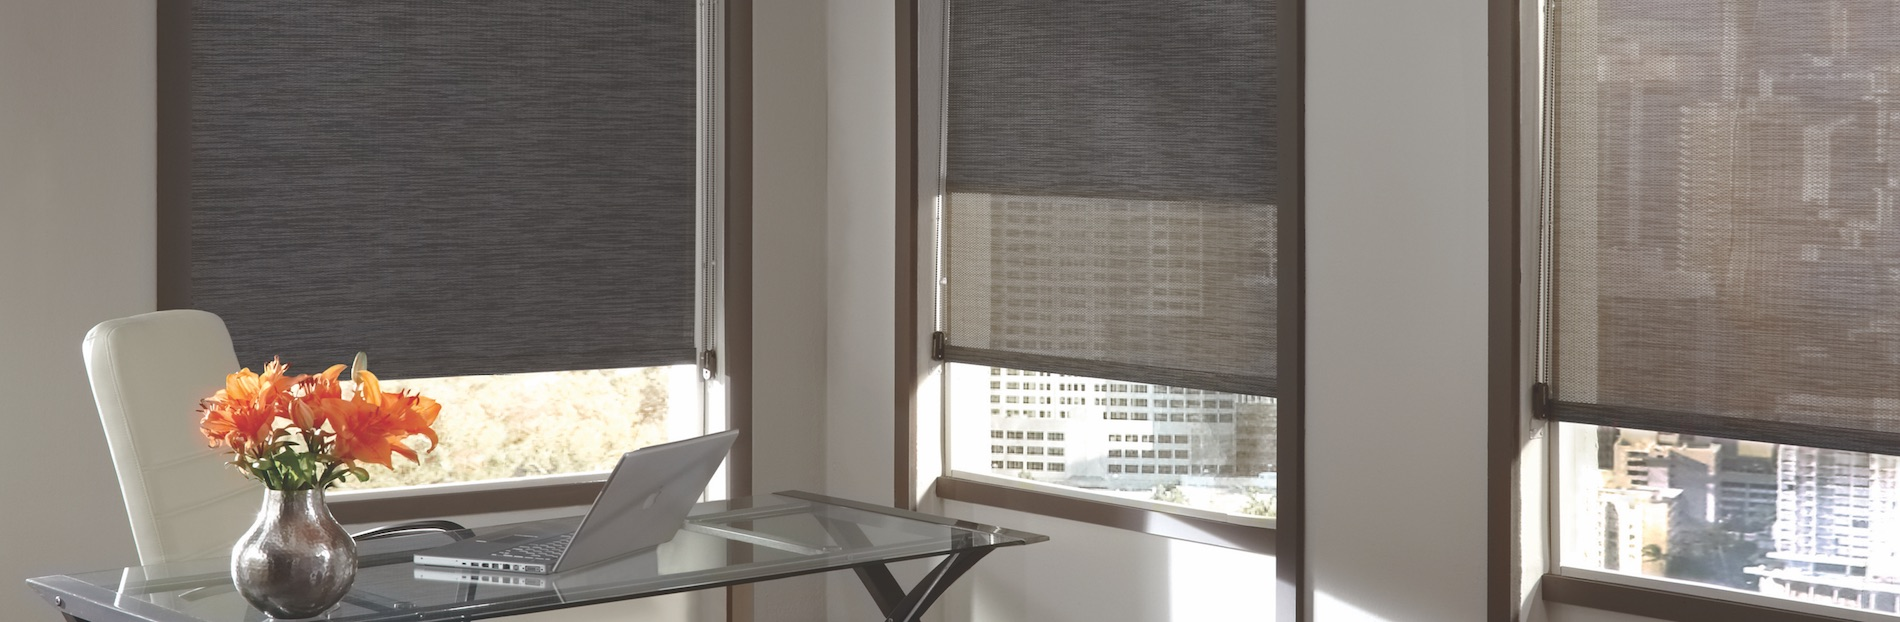 Window Treatments Denver Shutters Denver Colorado